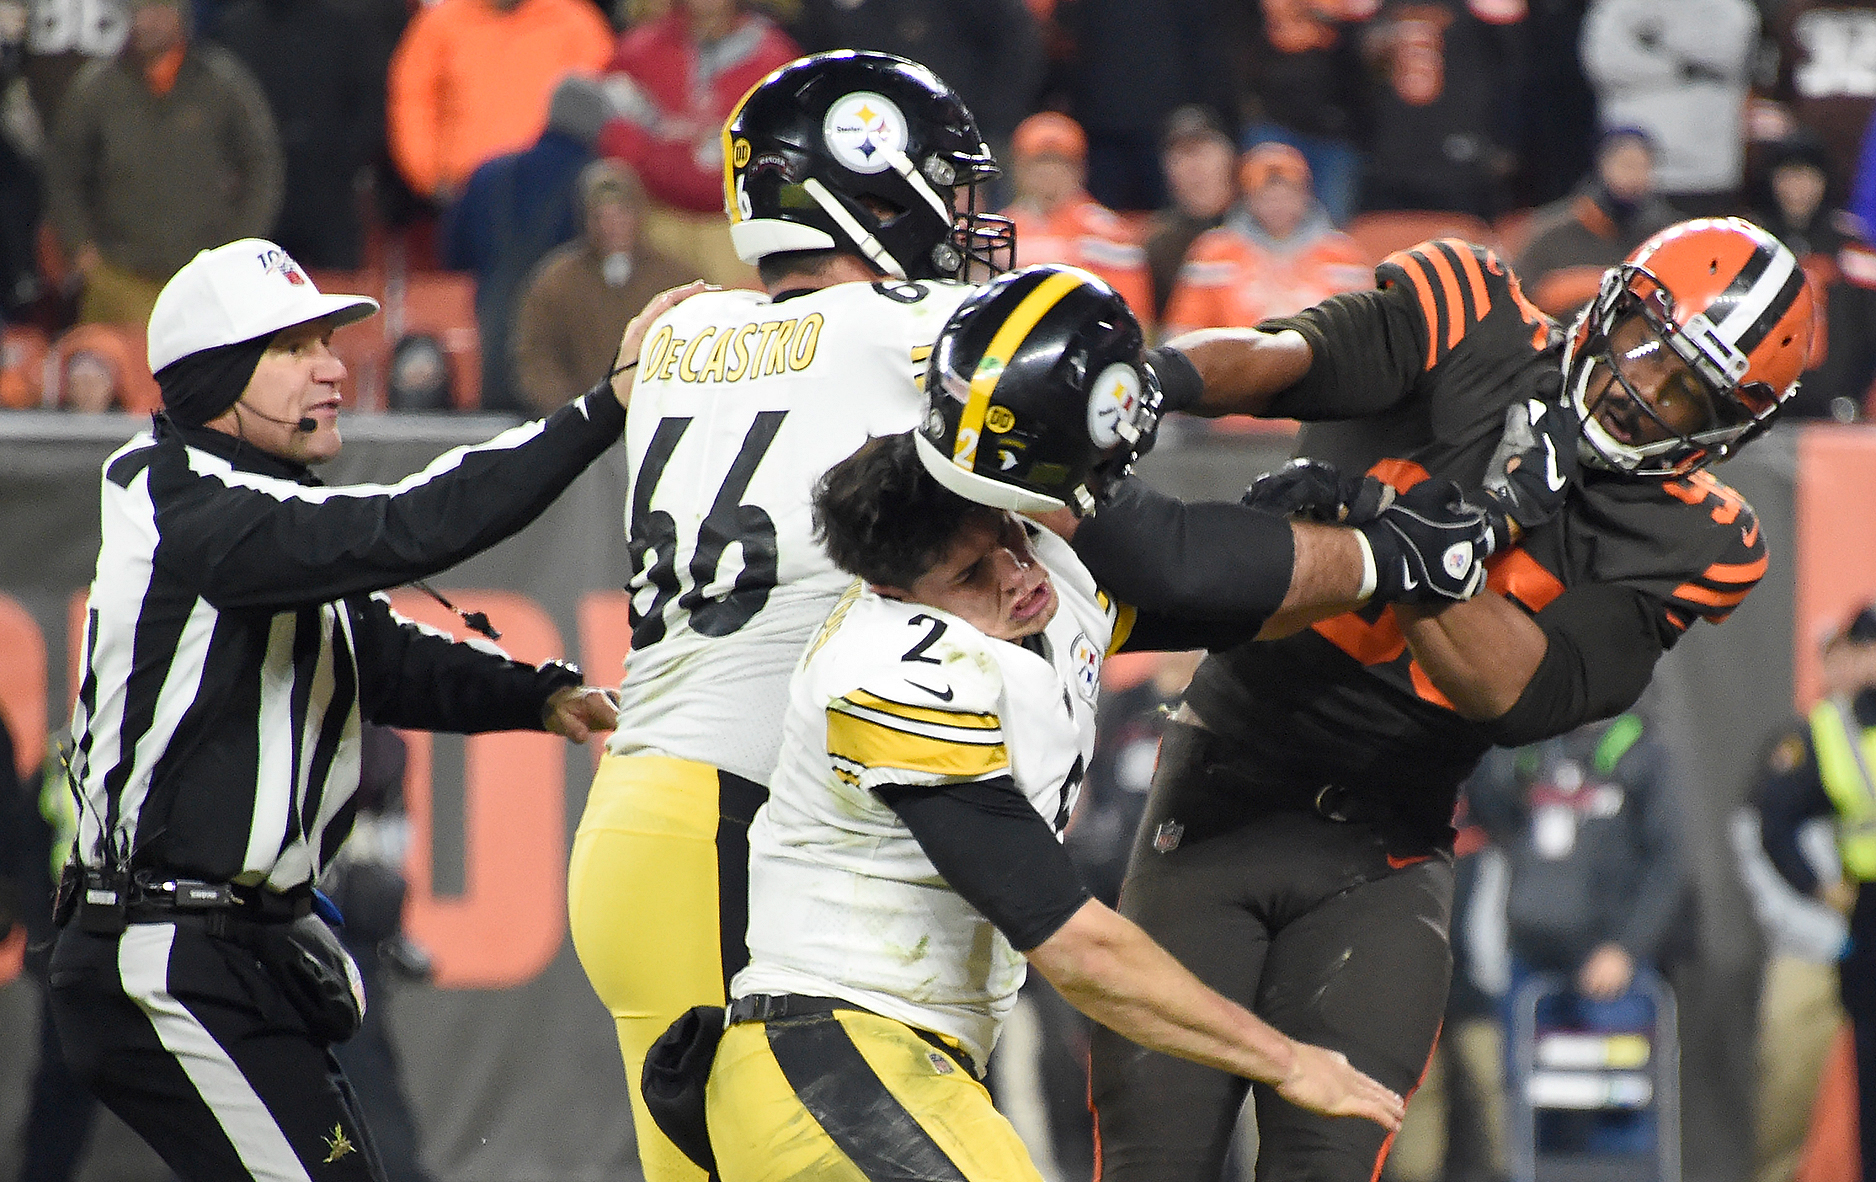 Westlake Legal Group 11_GettyImages-1187748357 Cleveland Browns' Myles Garrett to appeal indefinite suspension this week: reports Ryan Gaydos fox-news/sports/nfl/pittsburgh-steelers fox-news/sports/nfl/cleveland-browns fox-news/sports/nfl fox-news/person/myles-garrett fox-news/person/mason-rudolph fox news fnc/sports fnc article 0495f60b-114f-5321-9b96-57abaa89d13c